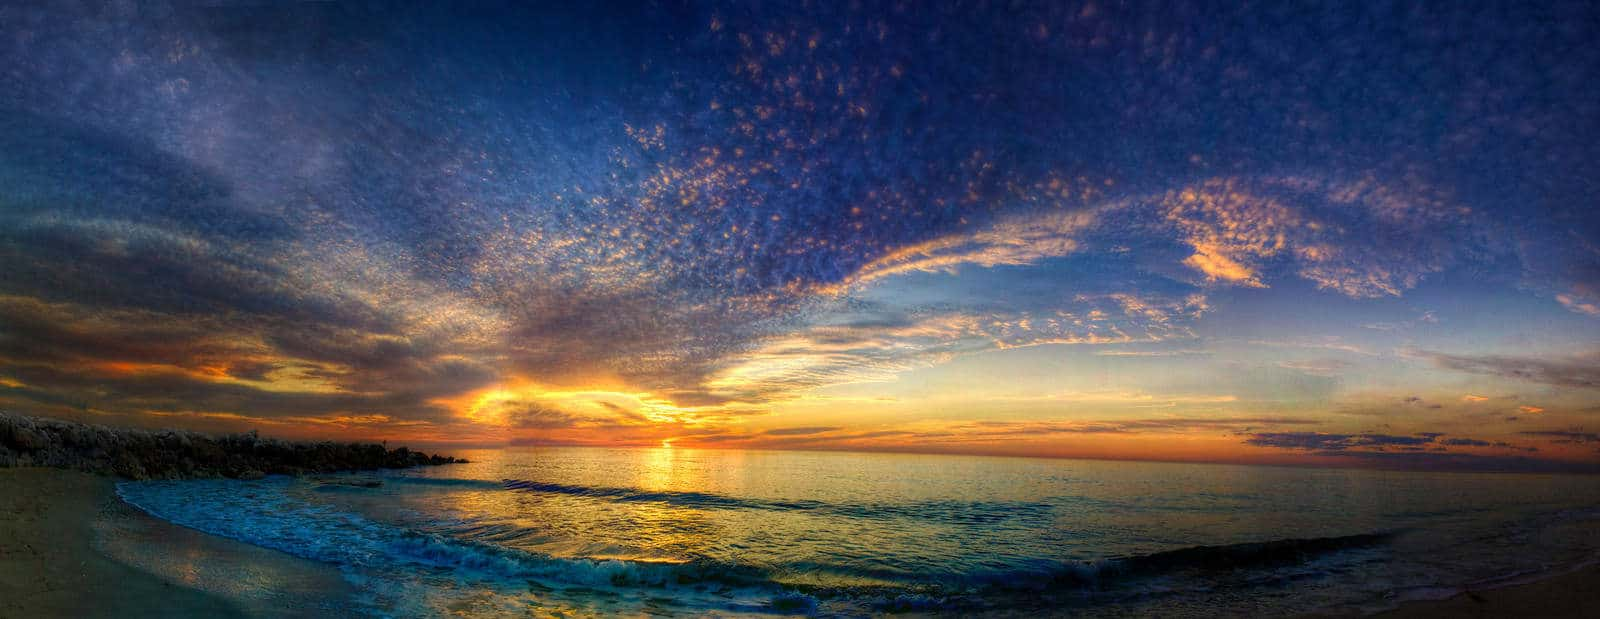 sunset heaven tips sunsets landscape patience panorama naples god beach nature stunning slider sky ocean jquery photographers clouds hdr fl